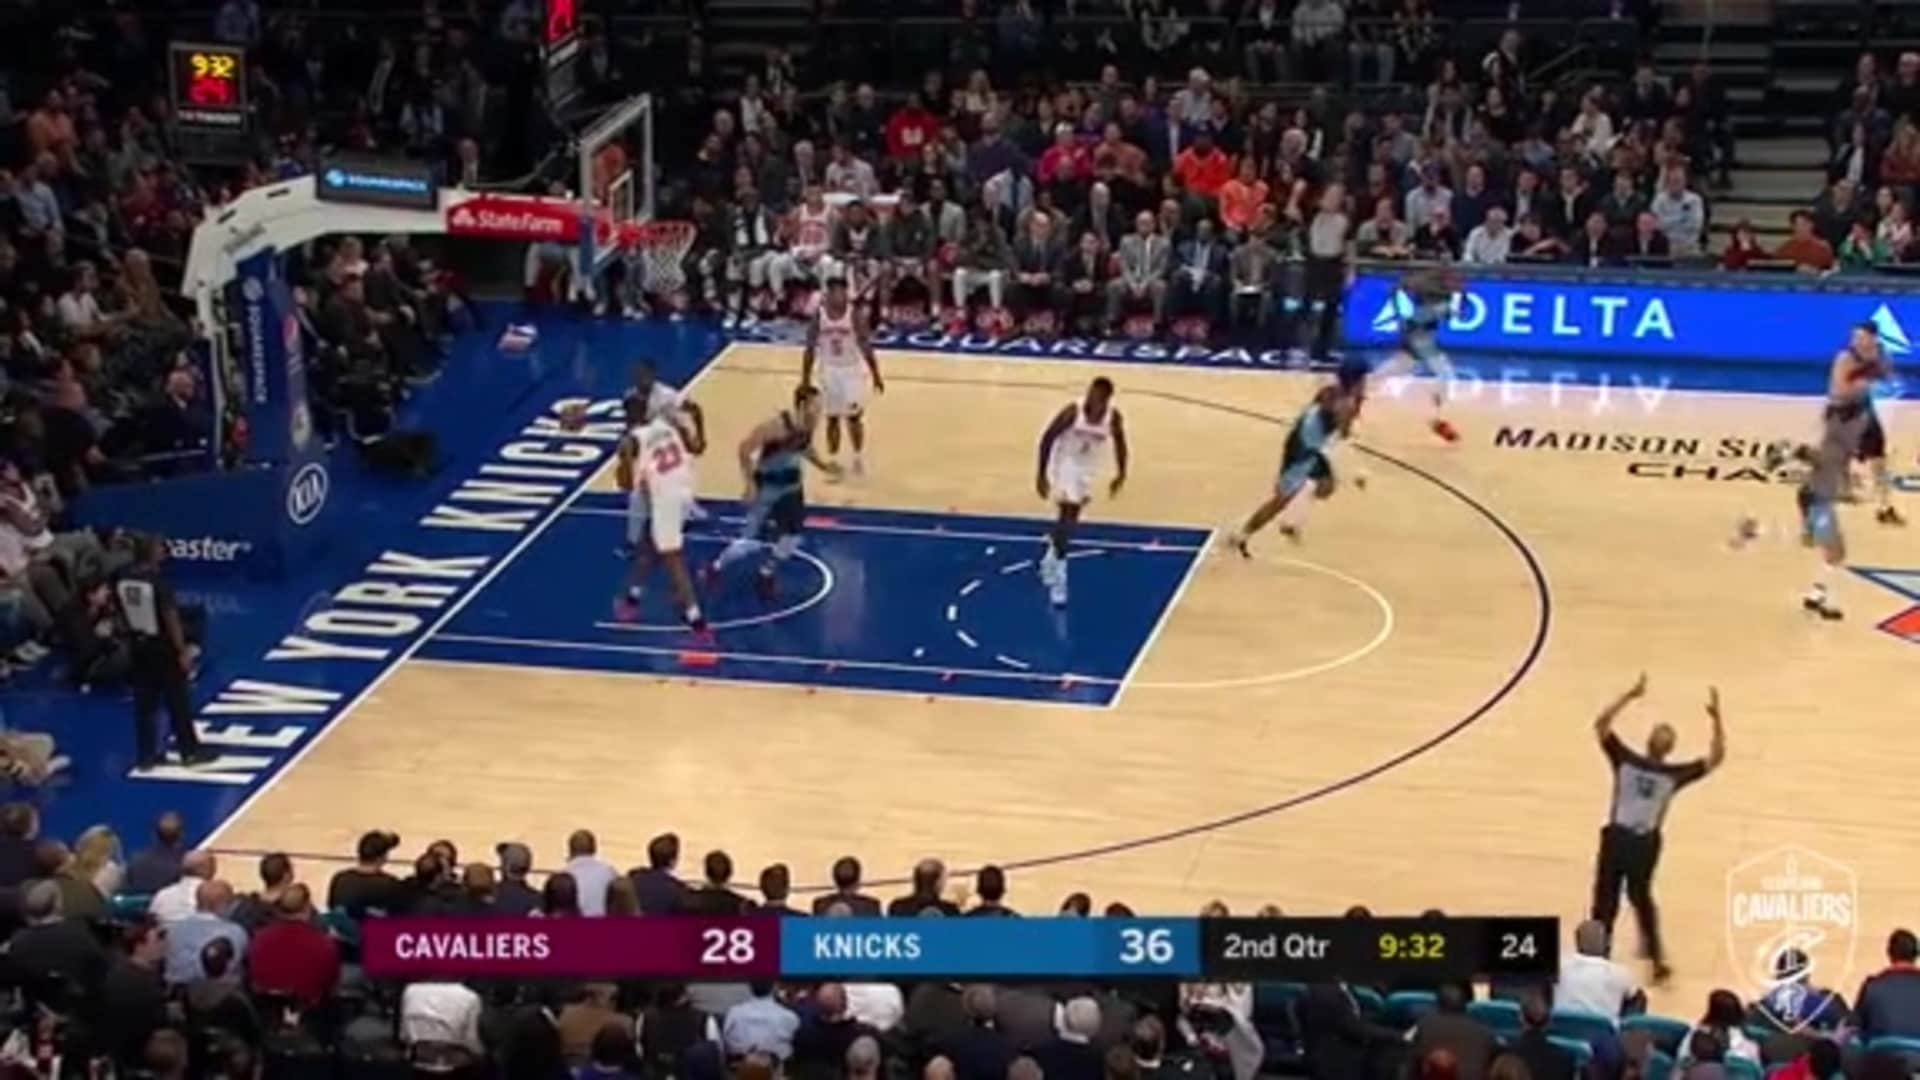 Cavs Can 4 Threes Over 5 Possessions to Cut into Knicks Lead